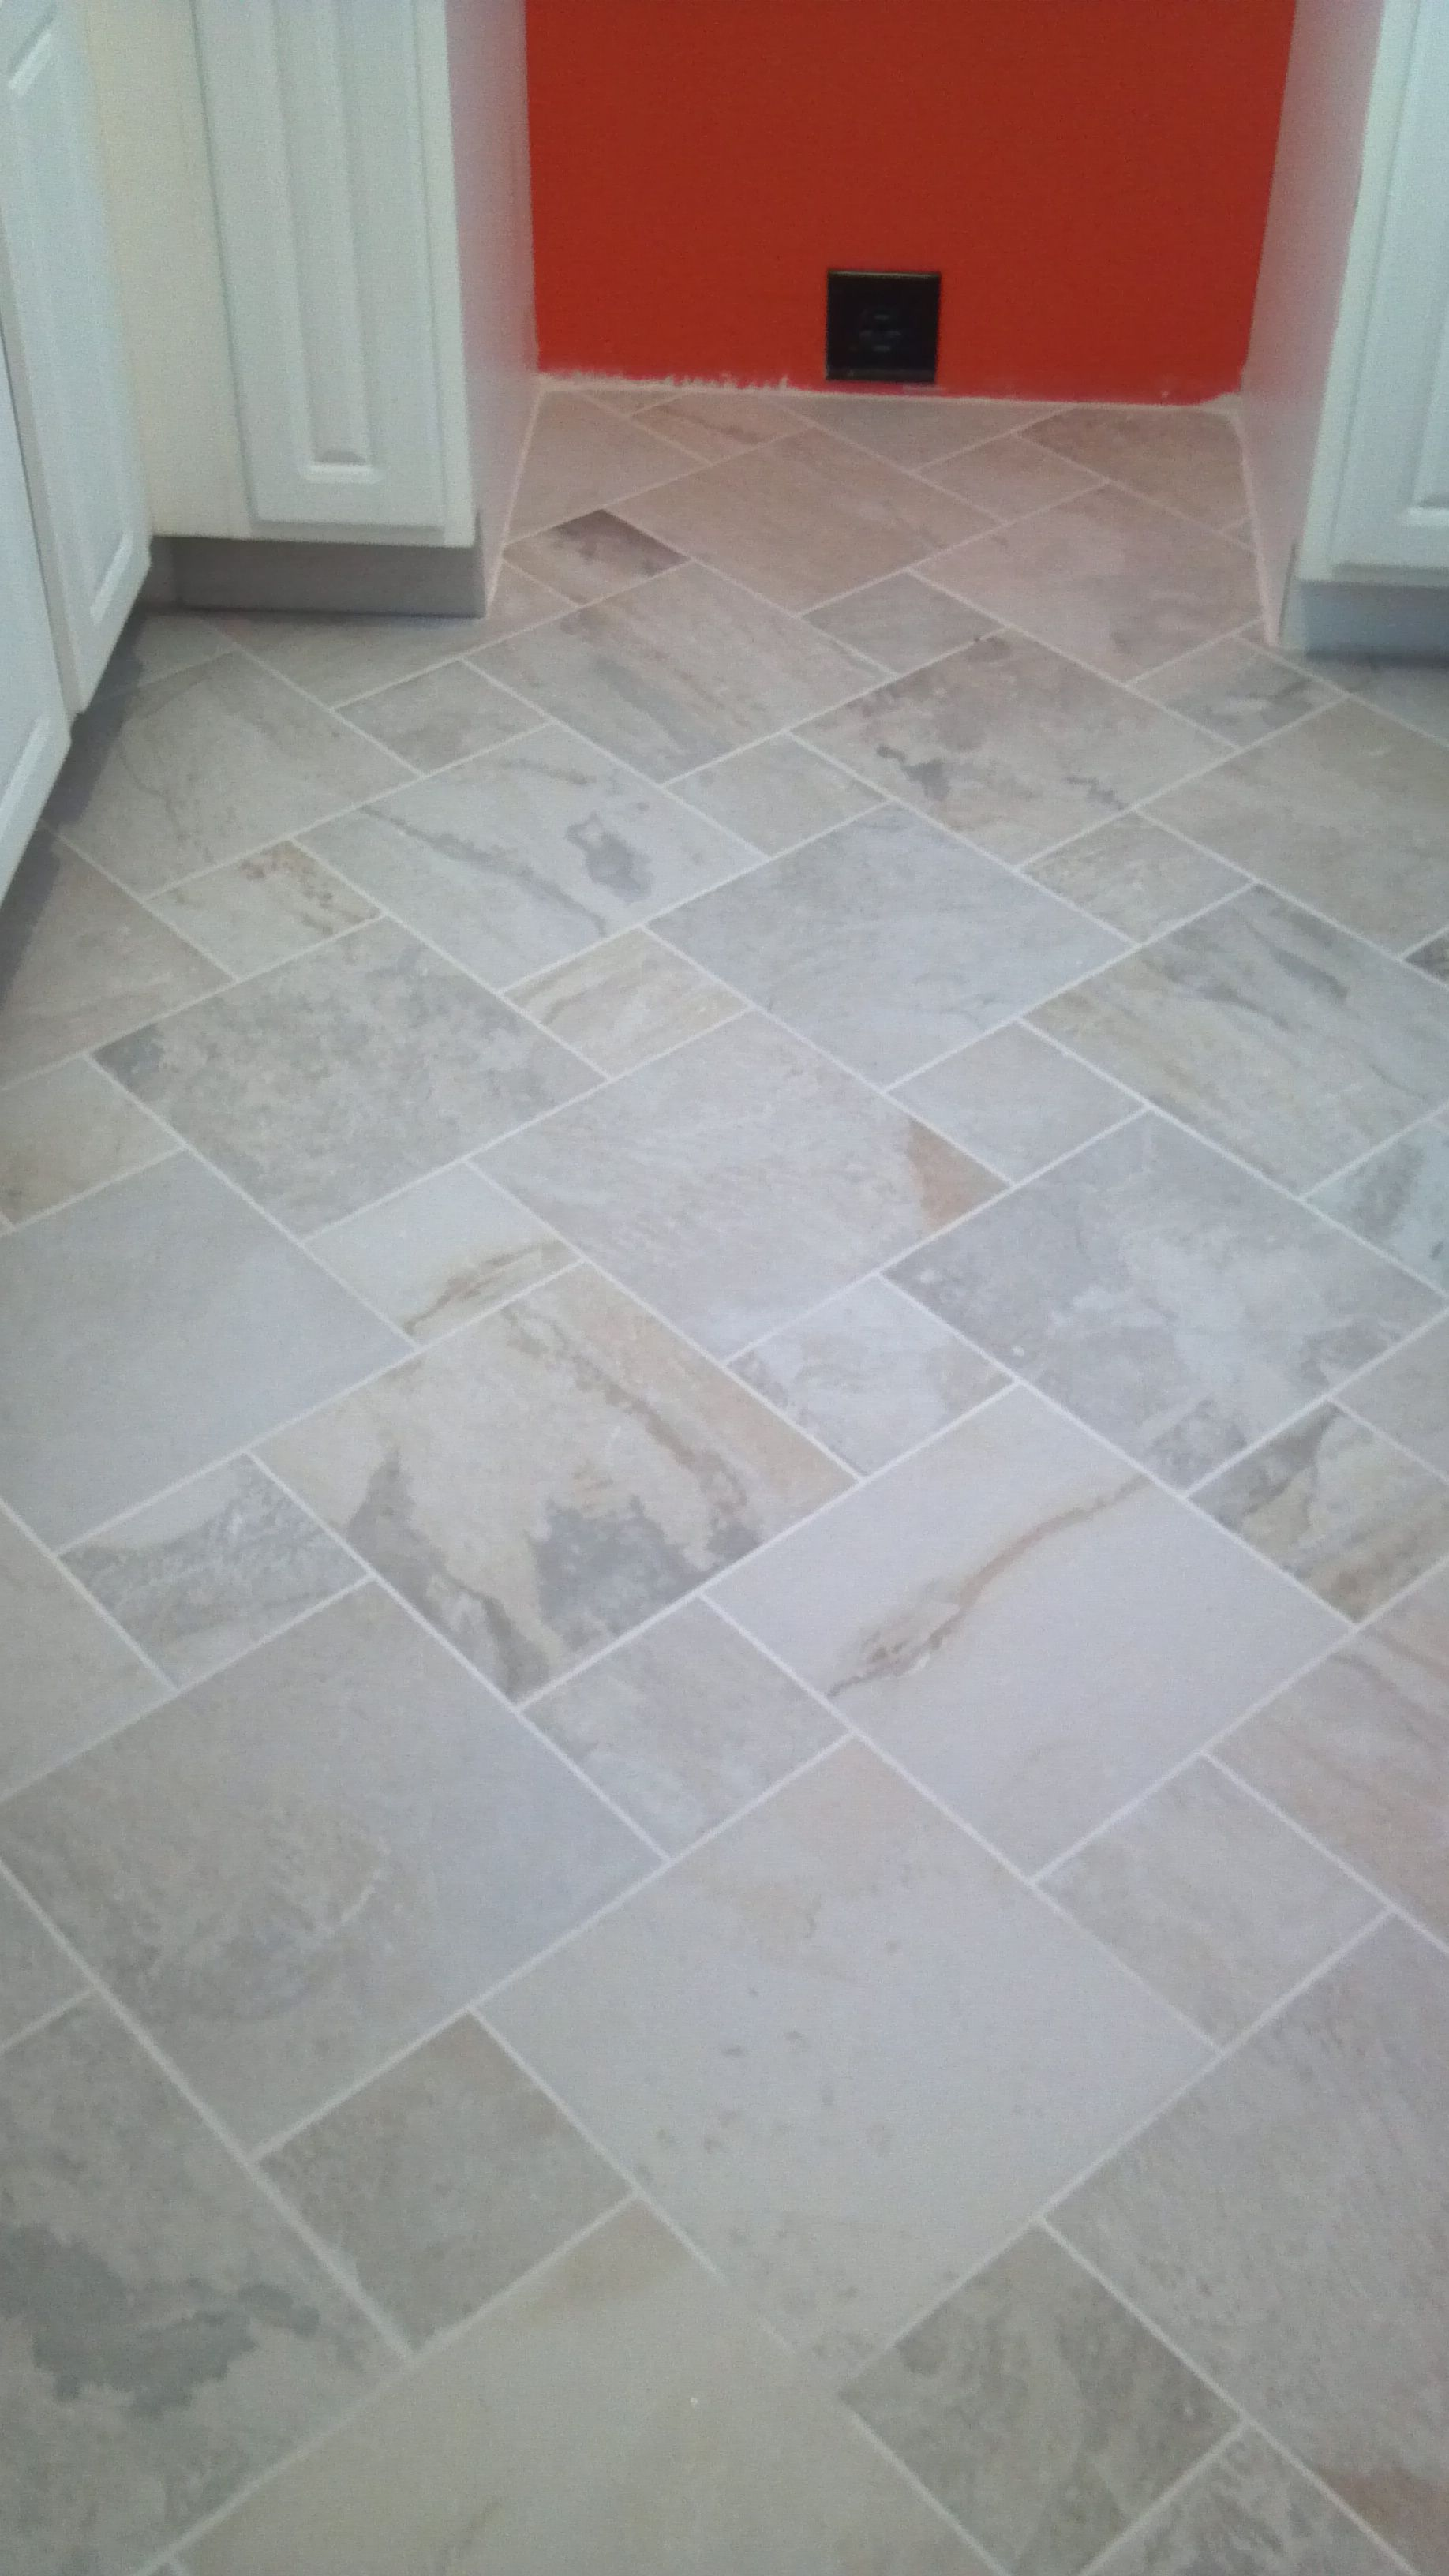 Ivetta white porcelain tile lowes tile pinterest white porcelain tile porcelain tile - Lowes floor tiles porcelain ...